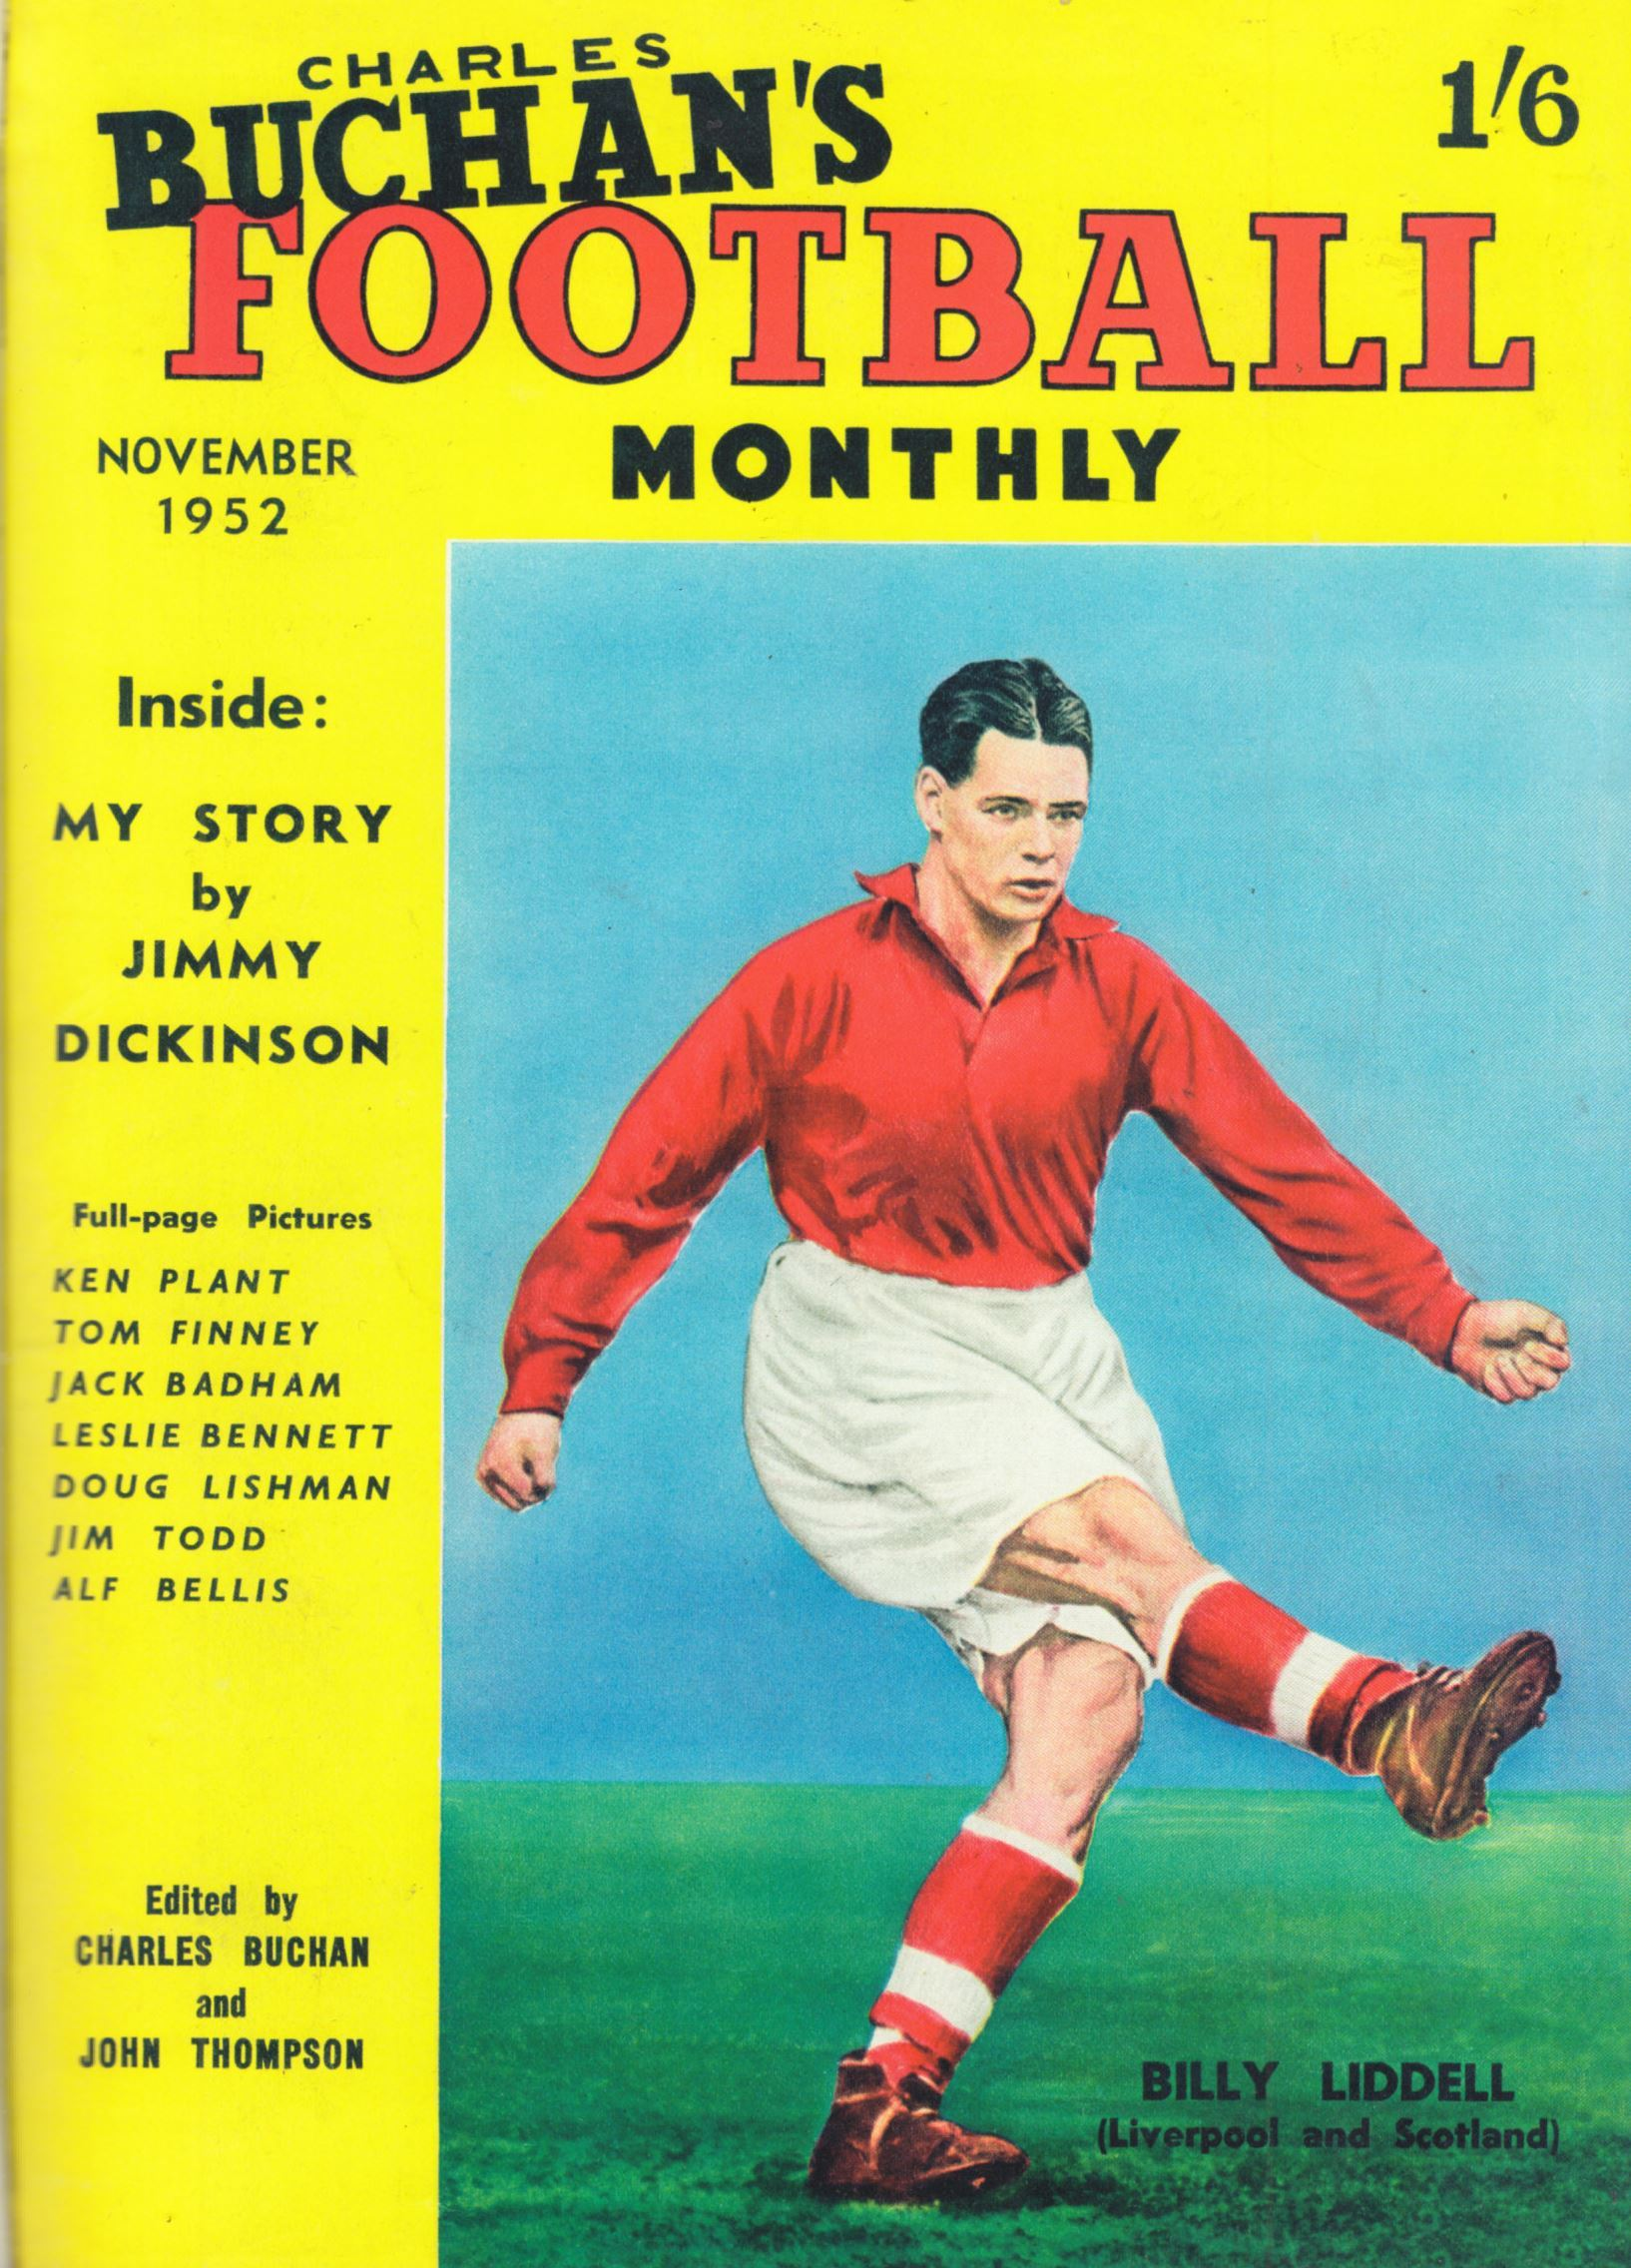 Billy Liddell on the cover of the Football Monthly - November 1952